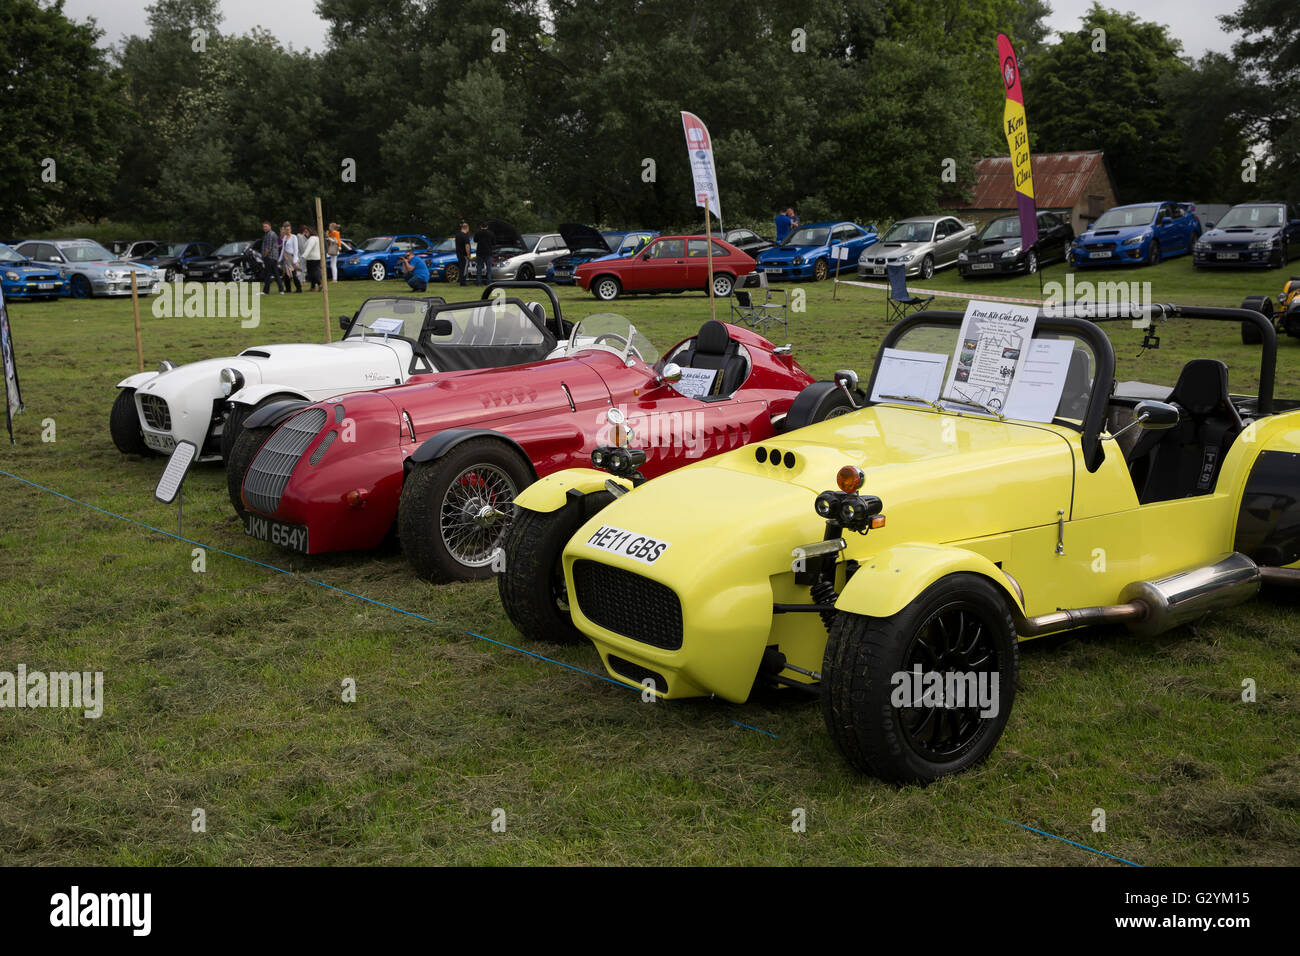 bromley, uk. 5th june 2016. a row of kit cars on dispay at the stock